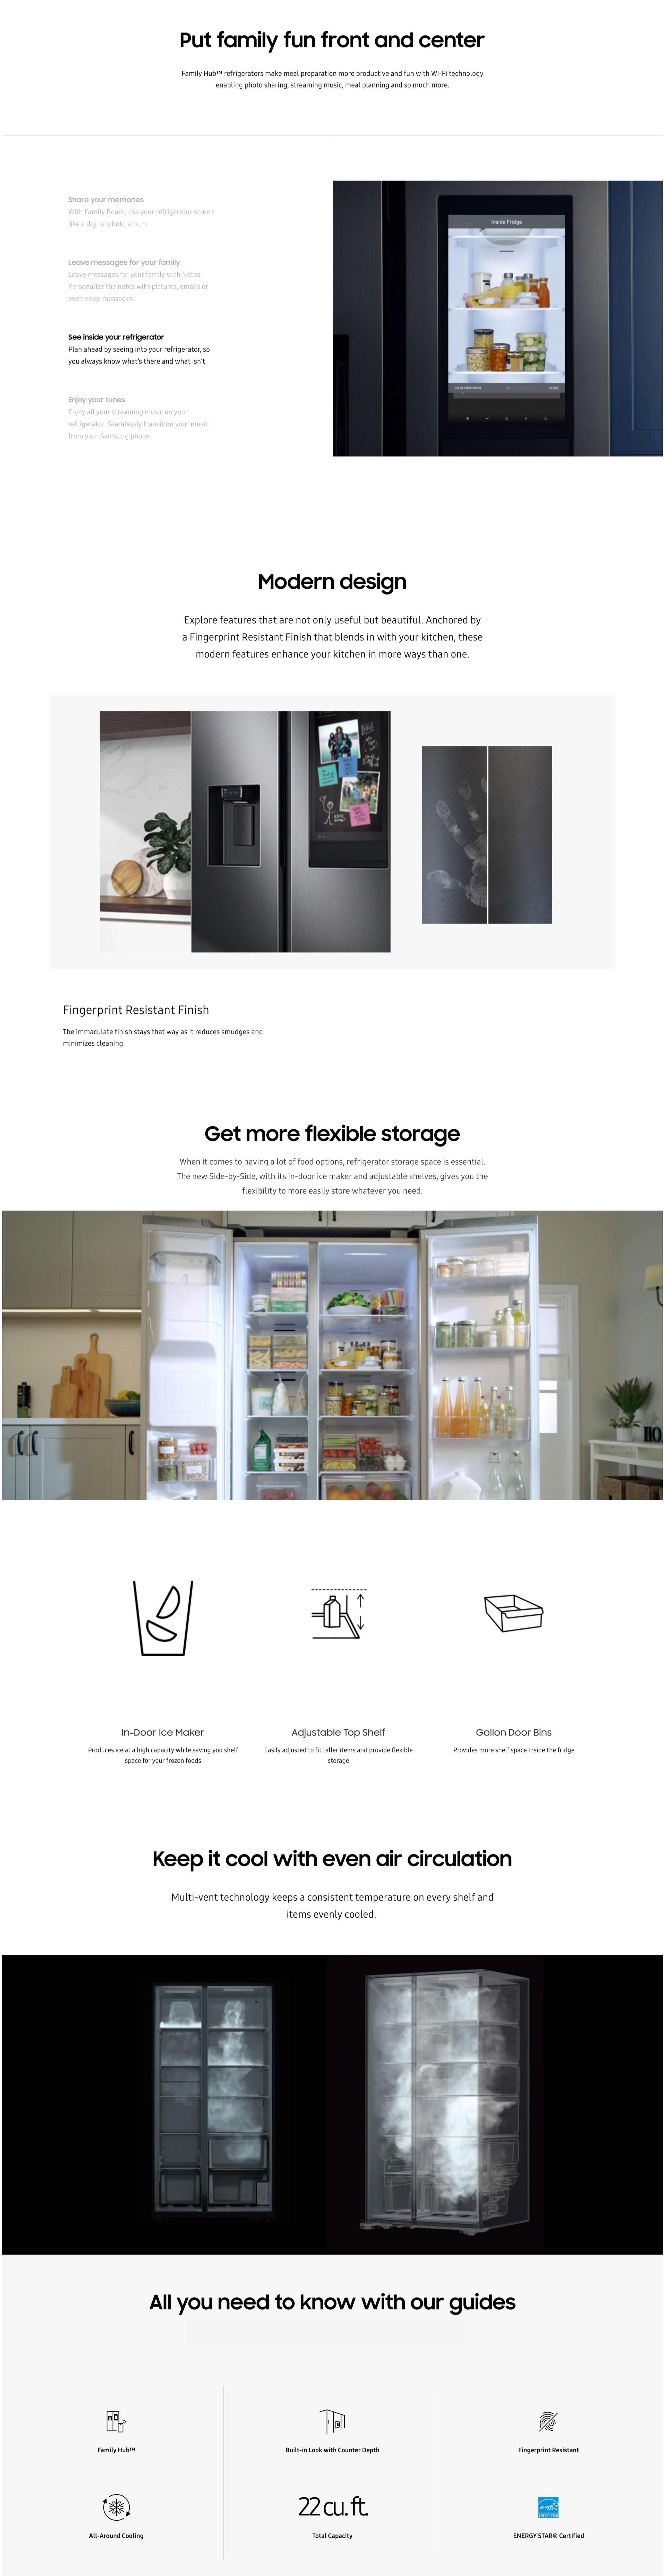 80193-22-cu-ft-counter-depth-side-by-side-refrigerator-in-stainless-steel-rs22t5201sr-aa-2020-04-18-19-45-52.jpg